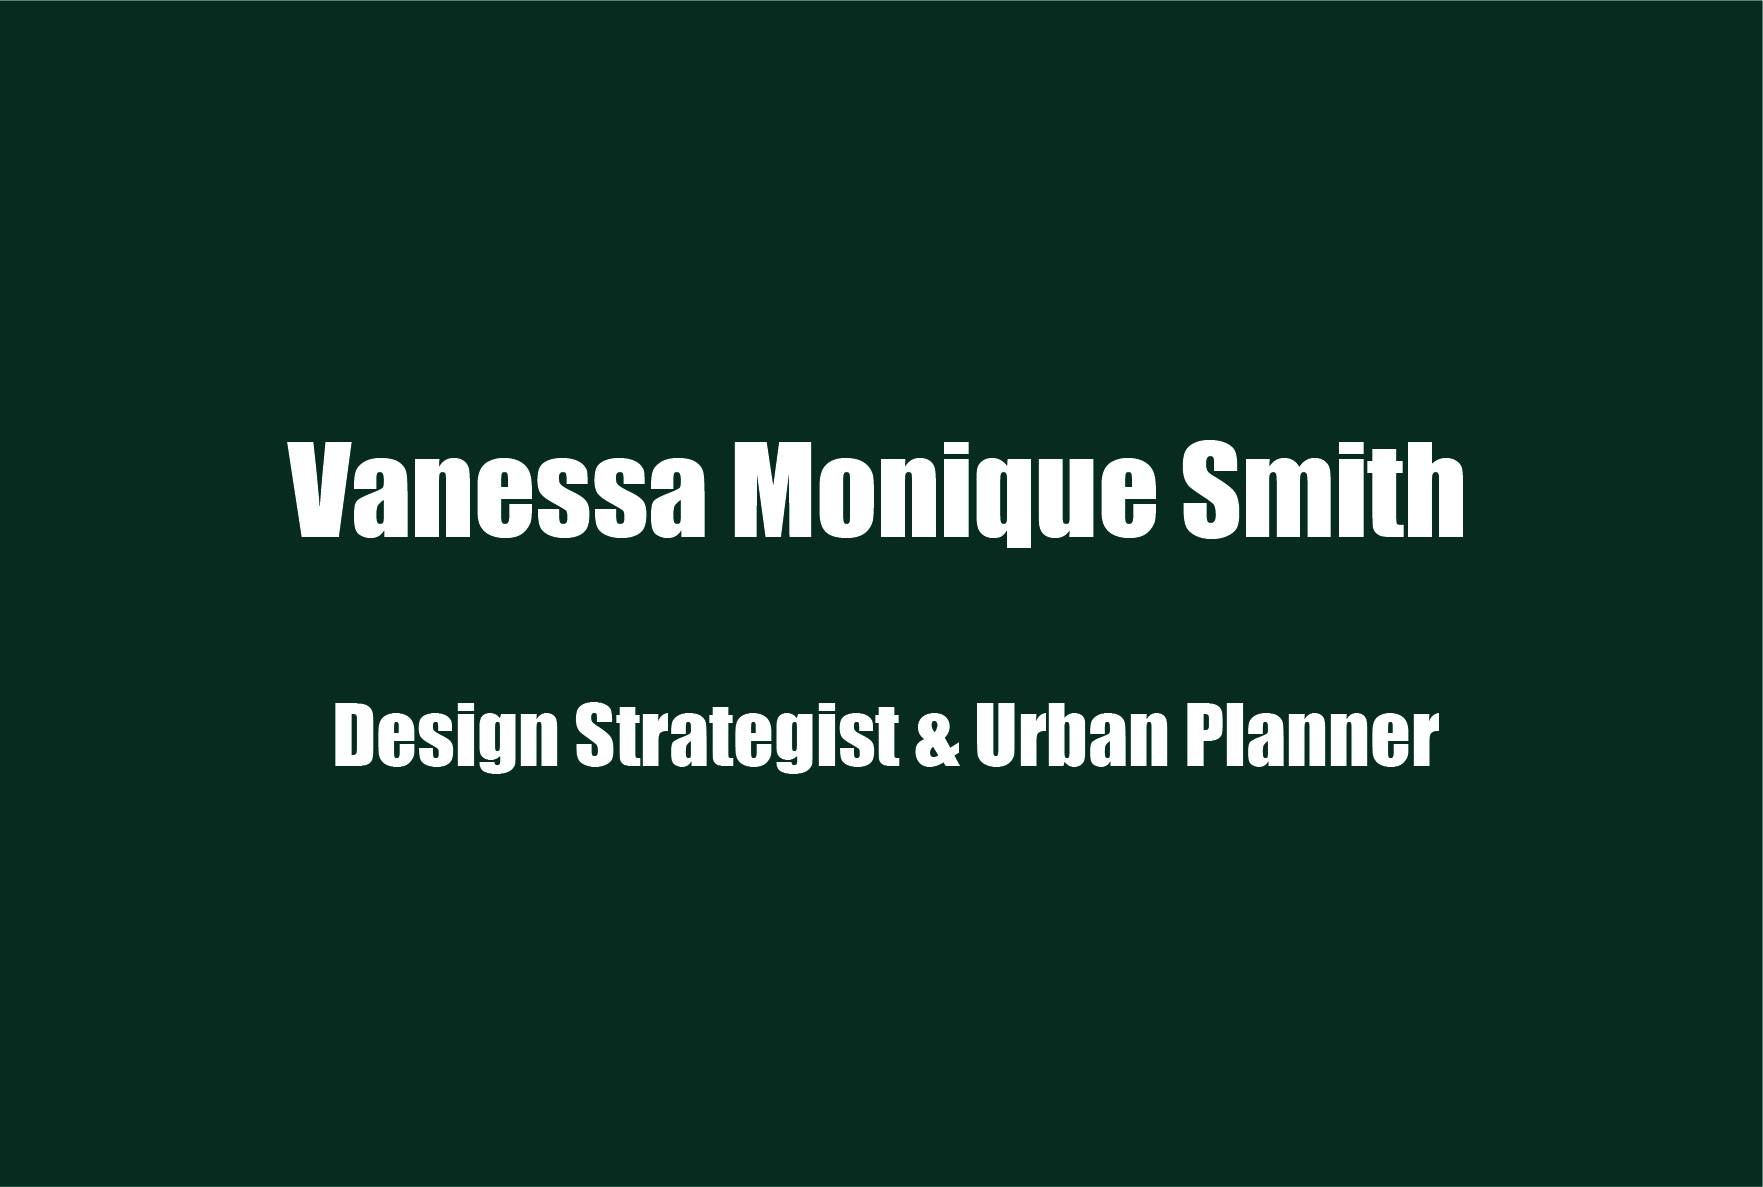 Vanessa Smith, Mental Health Advocate and Urban Planner, on Using the Arts & Cross-Disciplines to Challenge Stereotypes